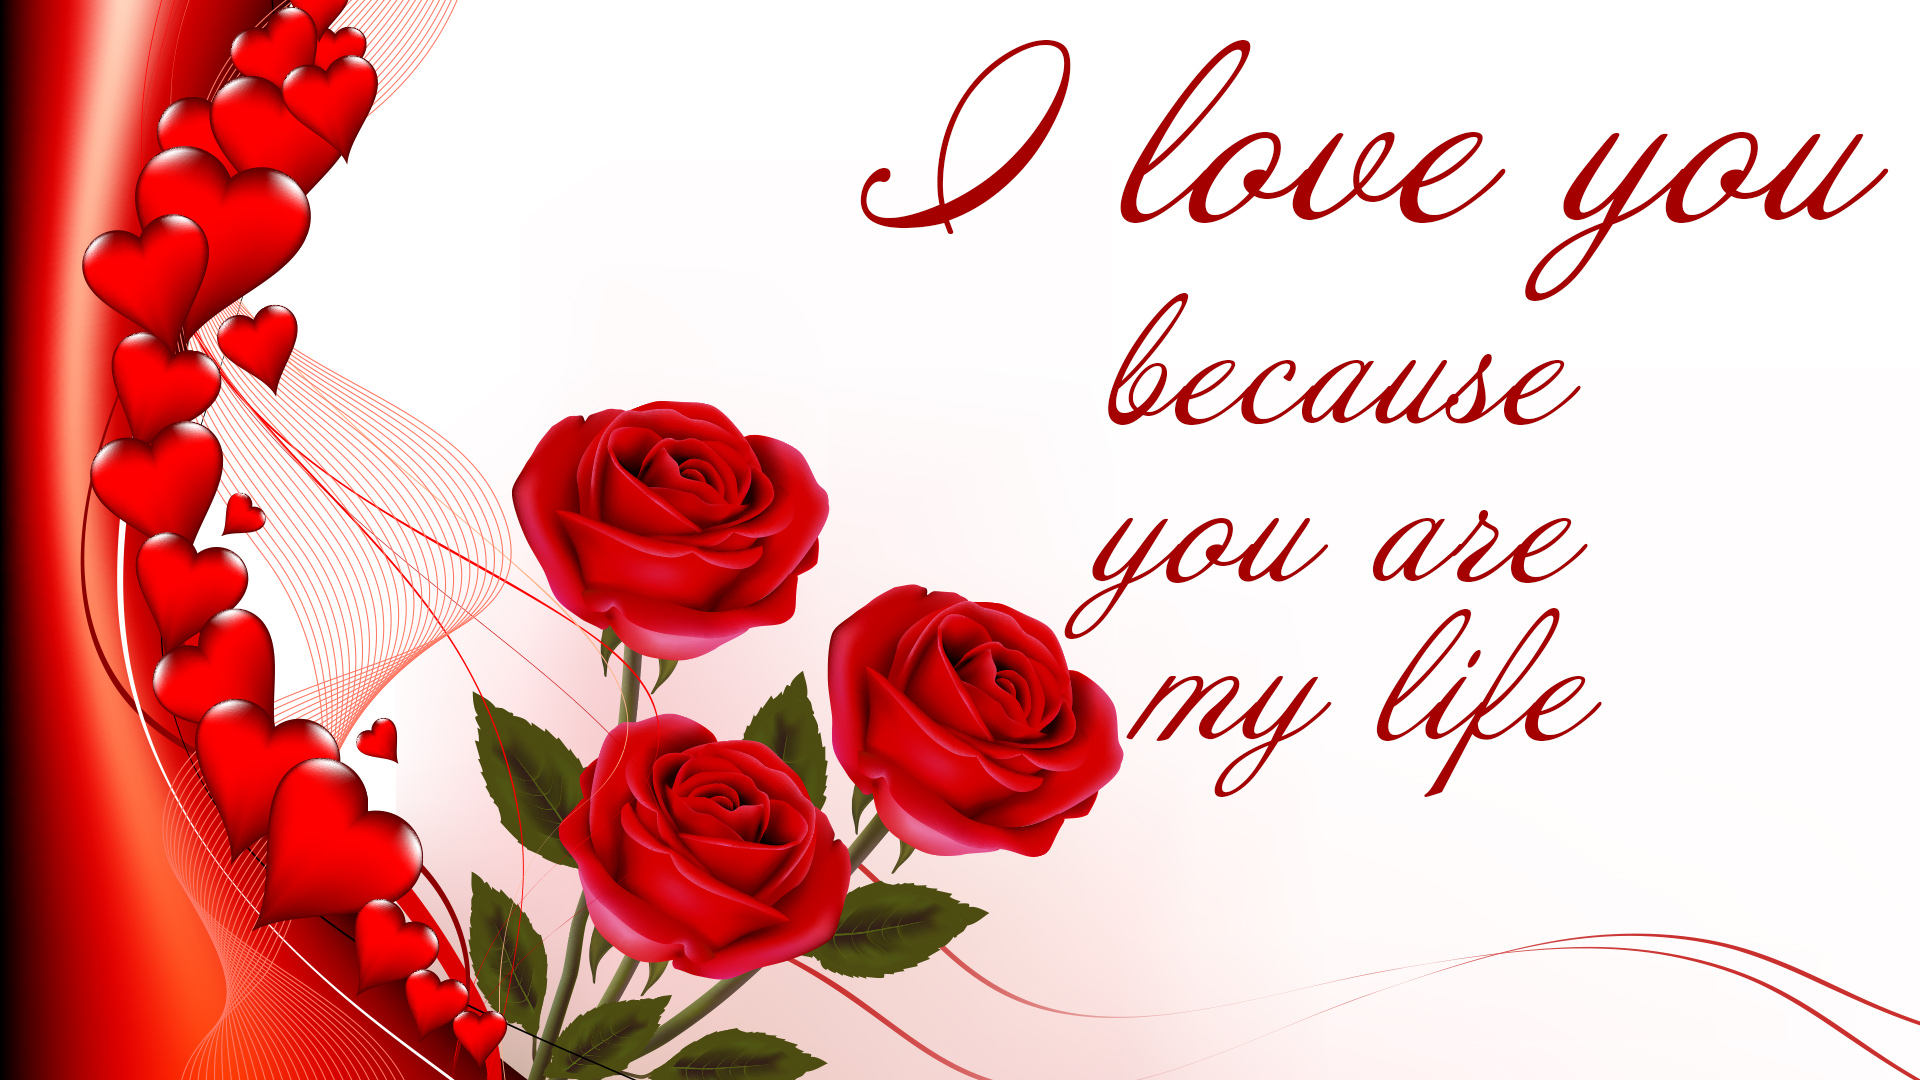 Valentine's Day Quotes for Your Love